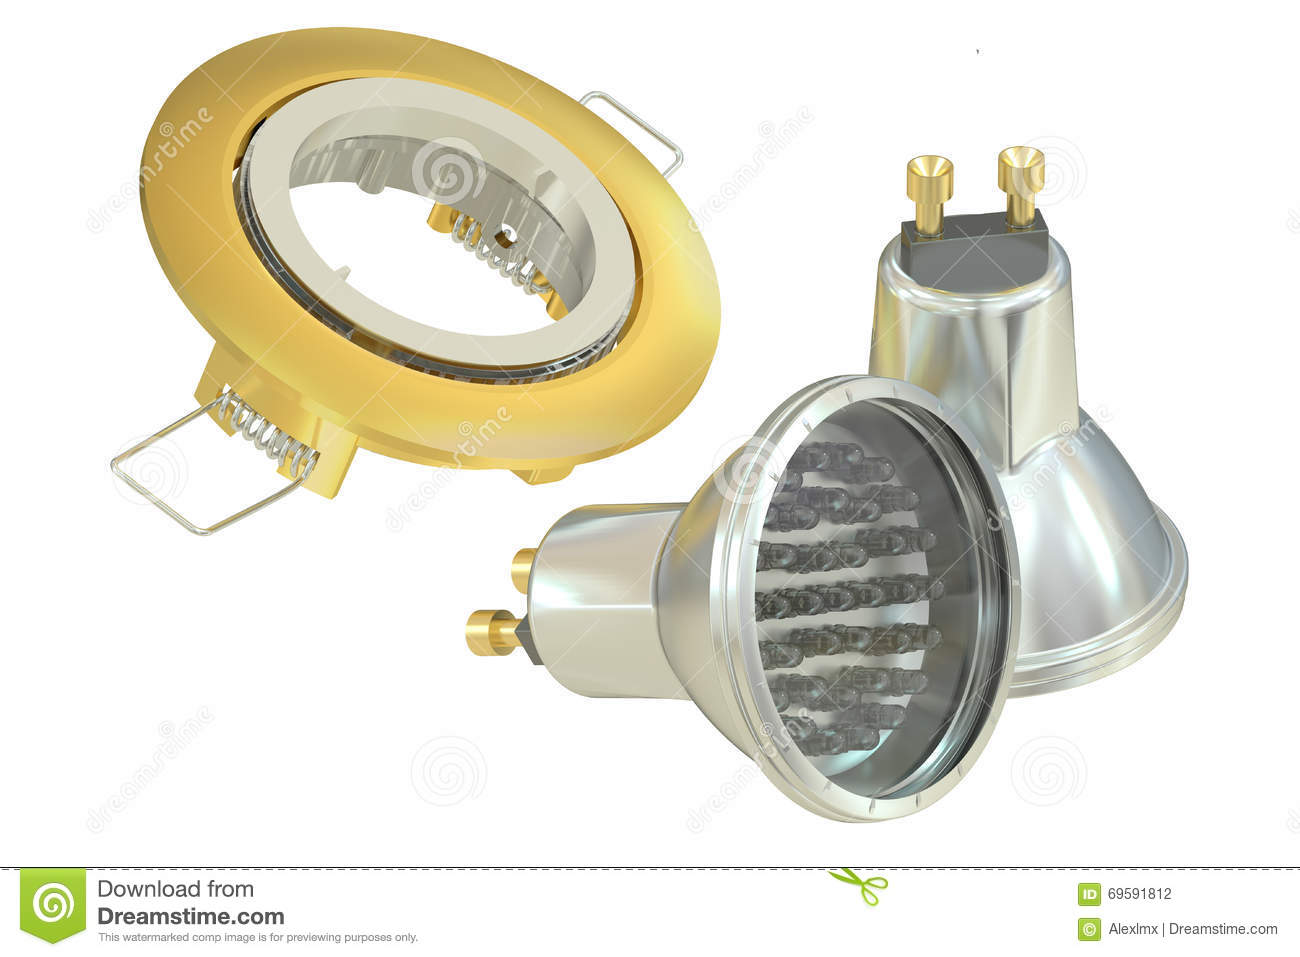 Diode Lighting Recessed Cartoons Illustrations And Vector Stock Images